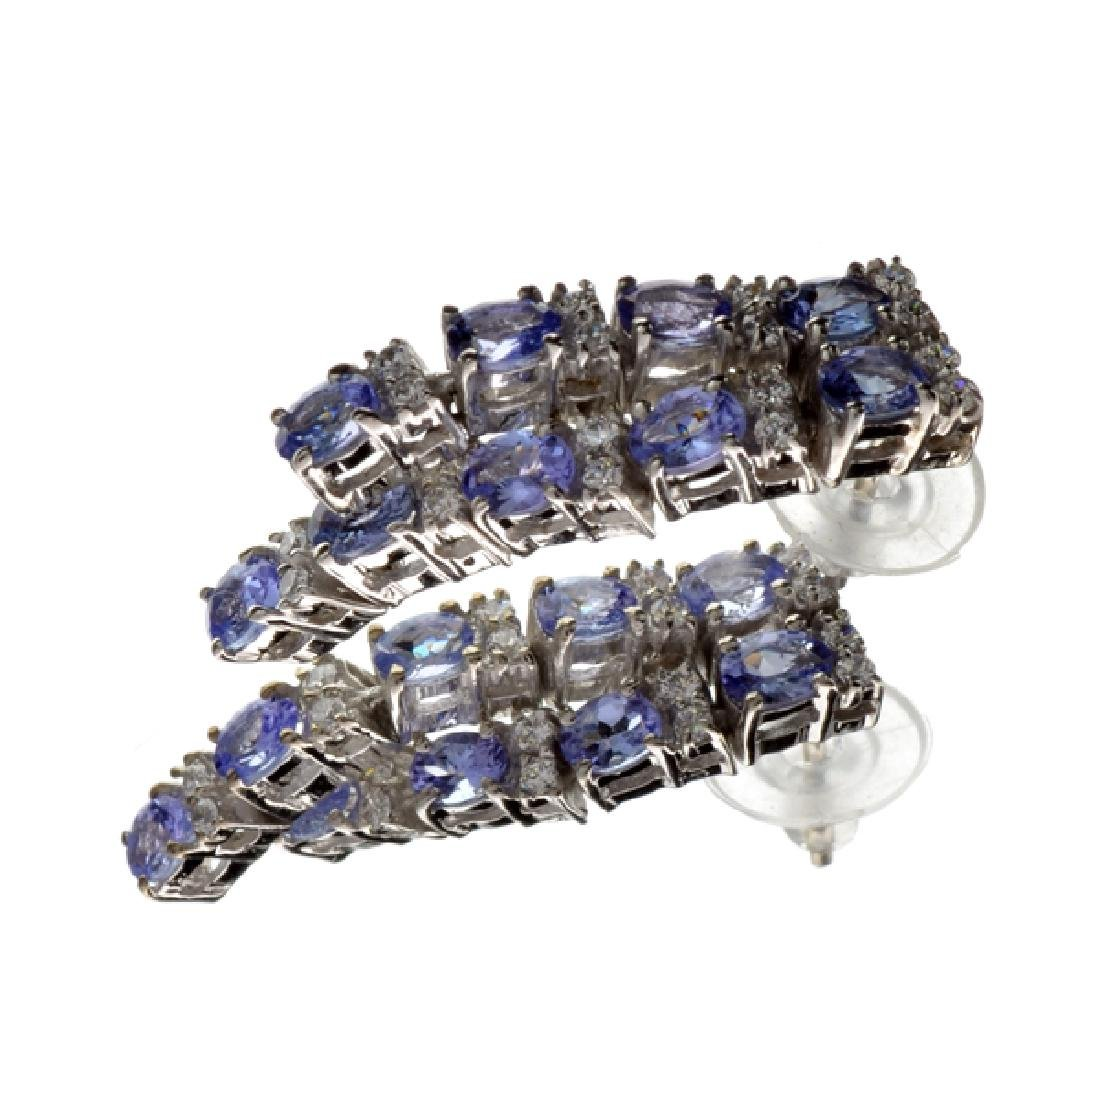 APP: 3.2k 3.56CT Tanzanite And Colorless Quartz